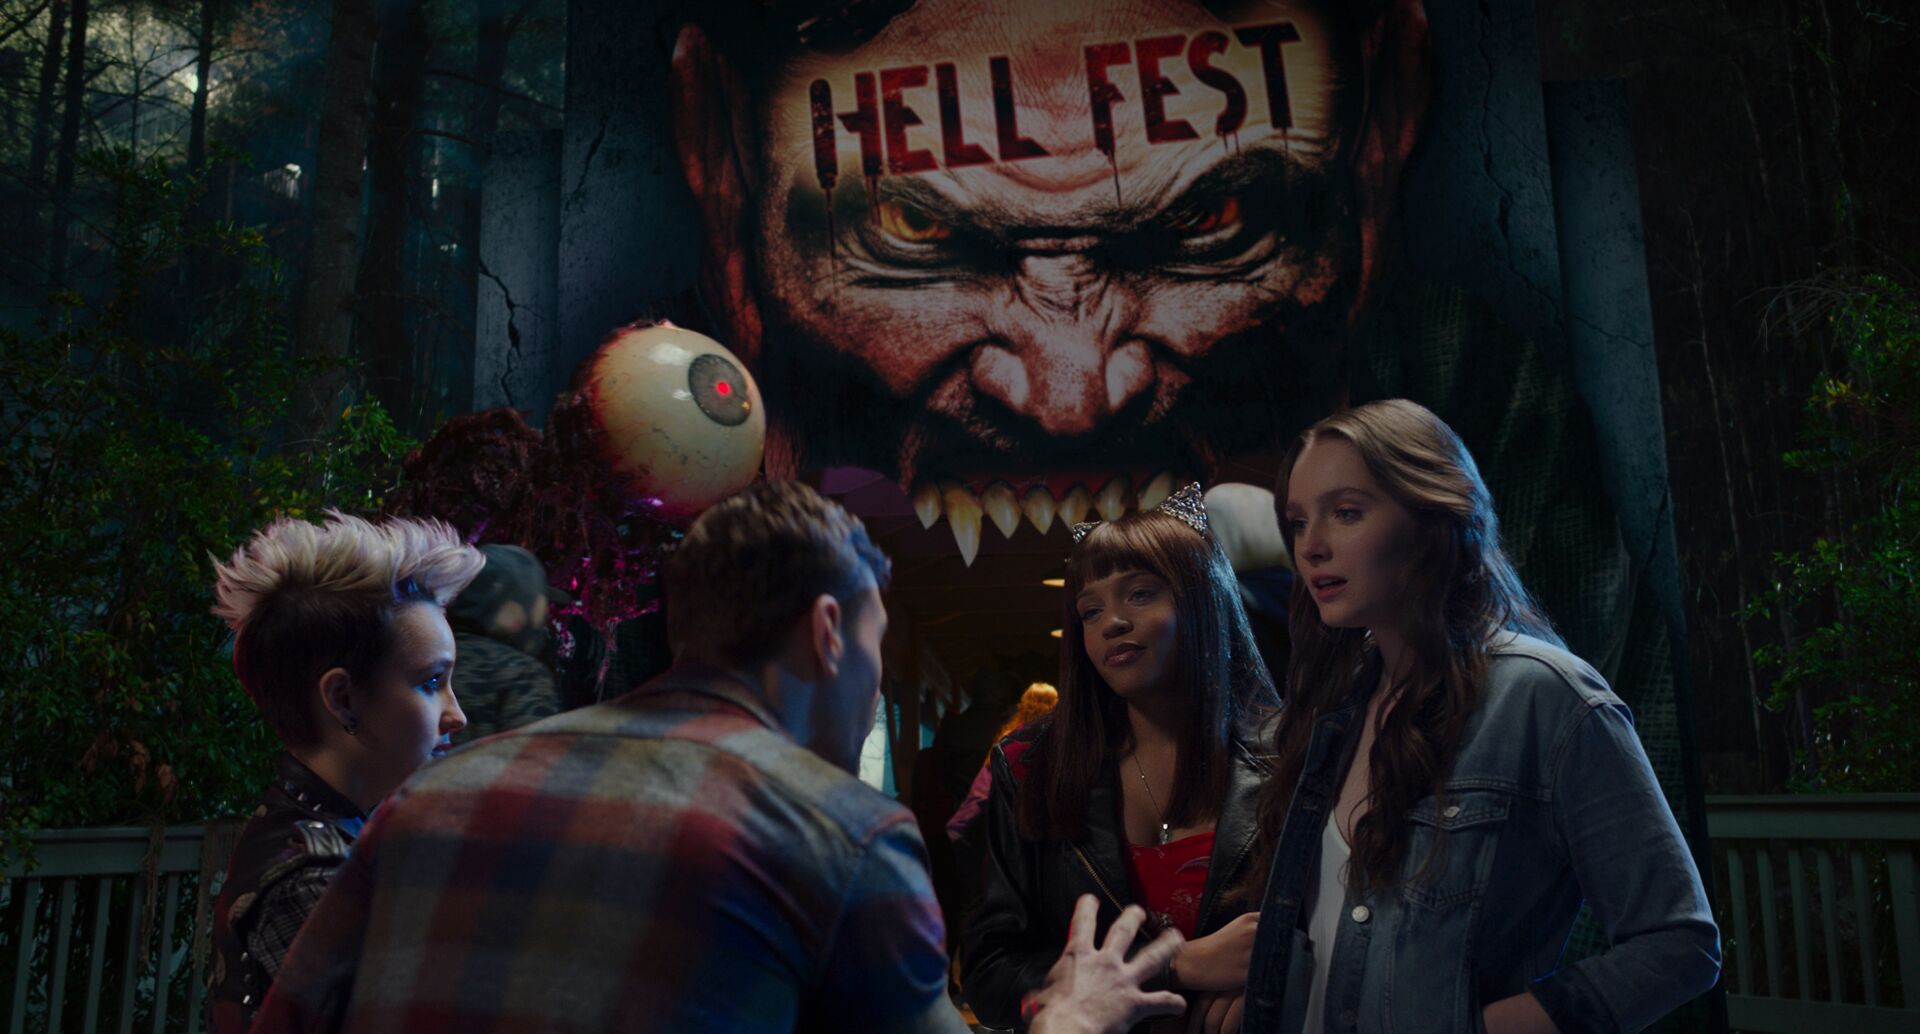 HELL FEST [Review]